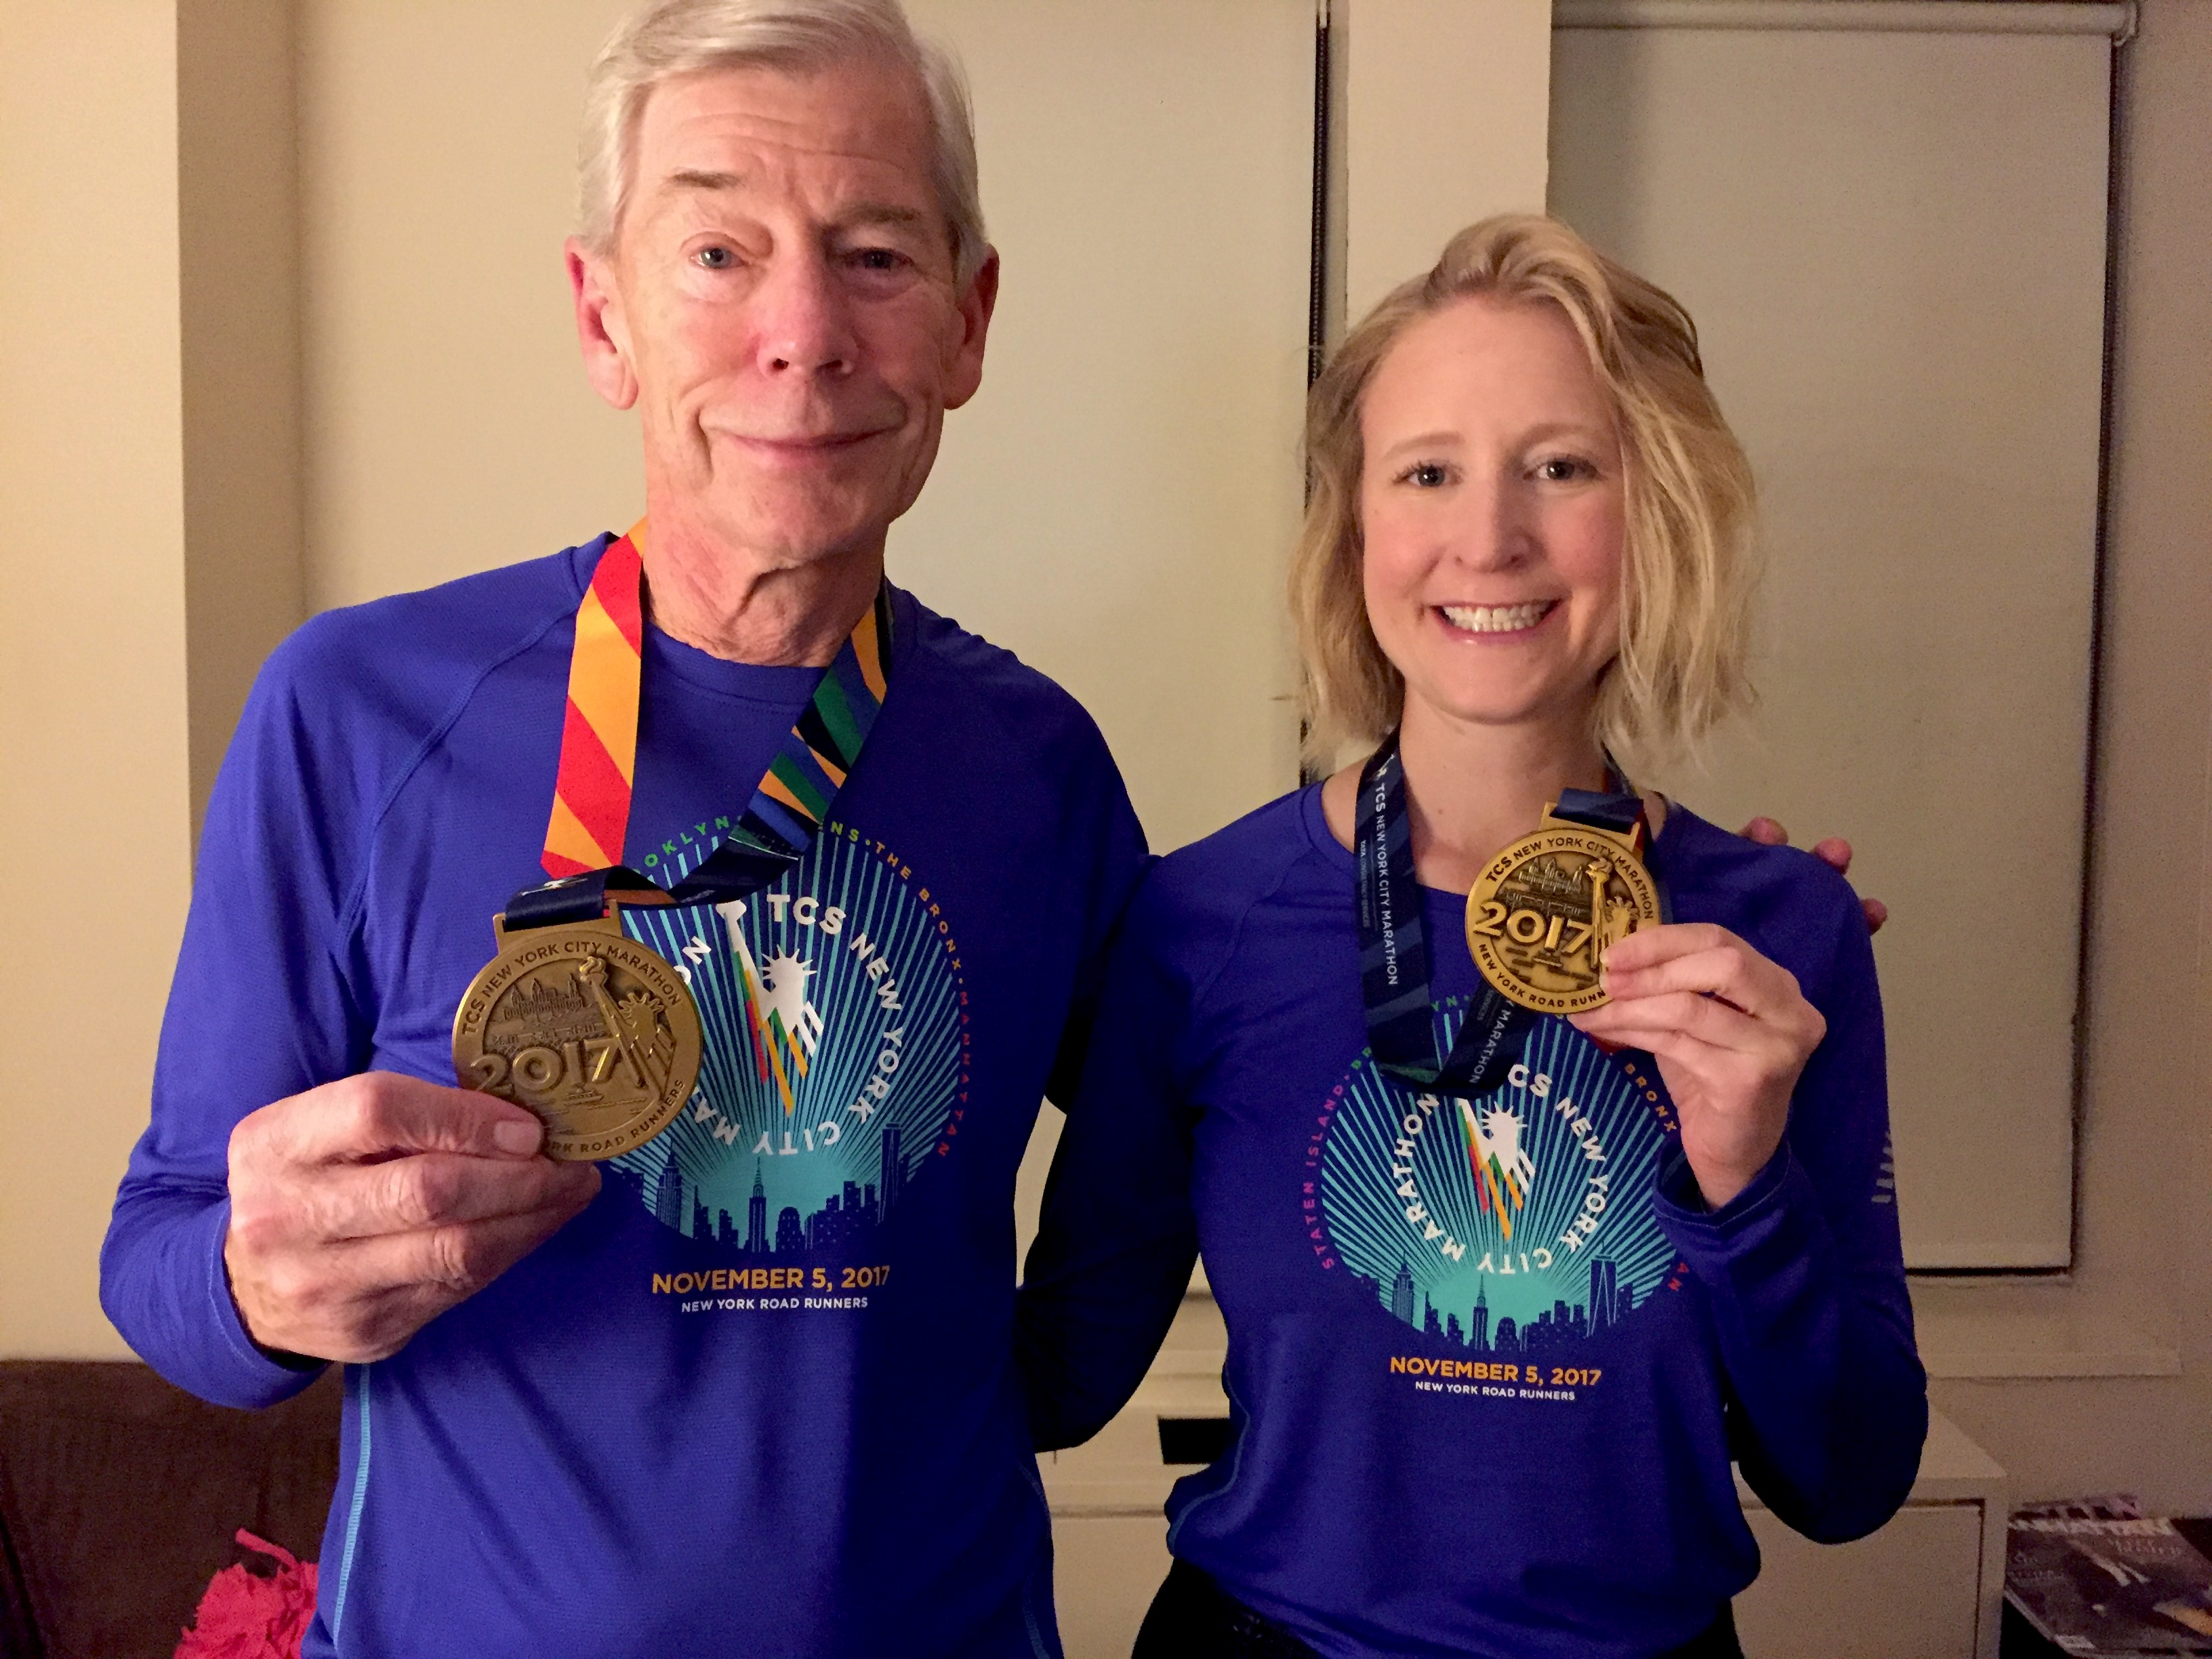 Two runners holding finisher medals from the TCS New York City Marathon